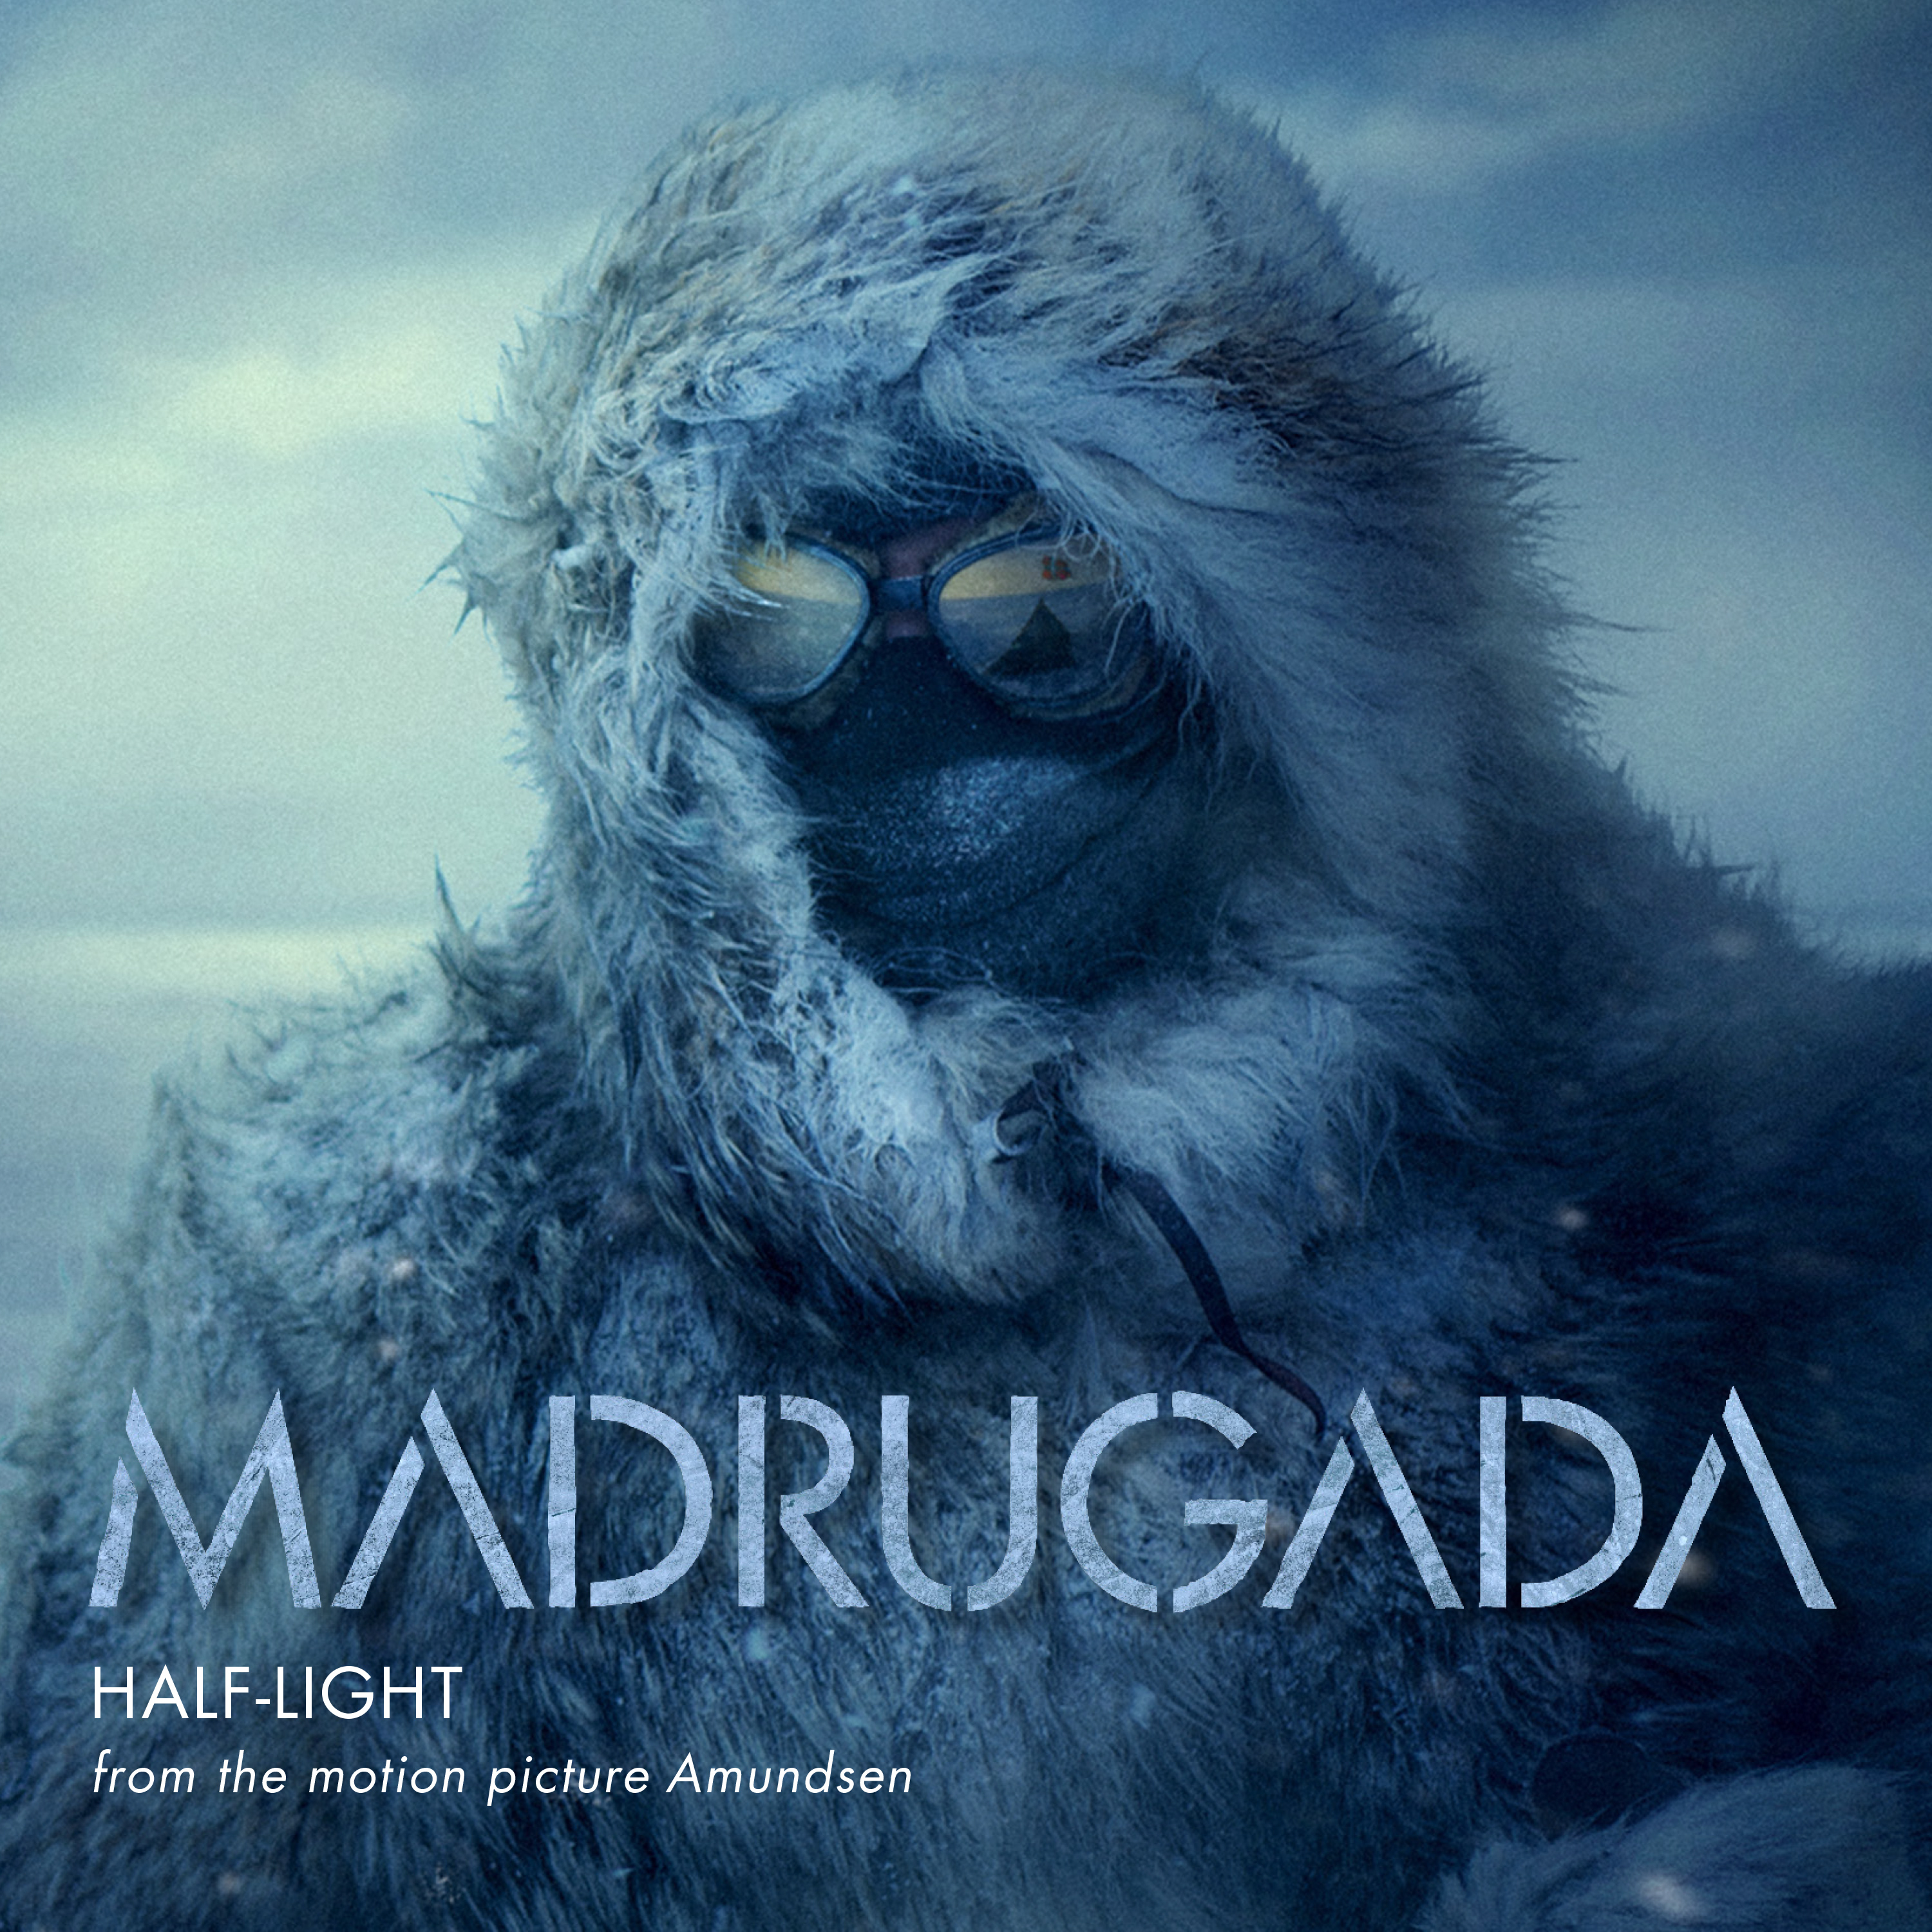 Madrugada - Half-Light (from the motion picture